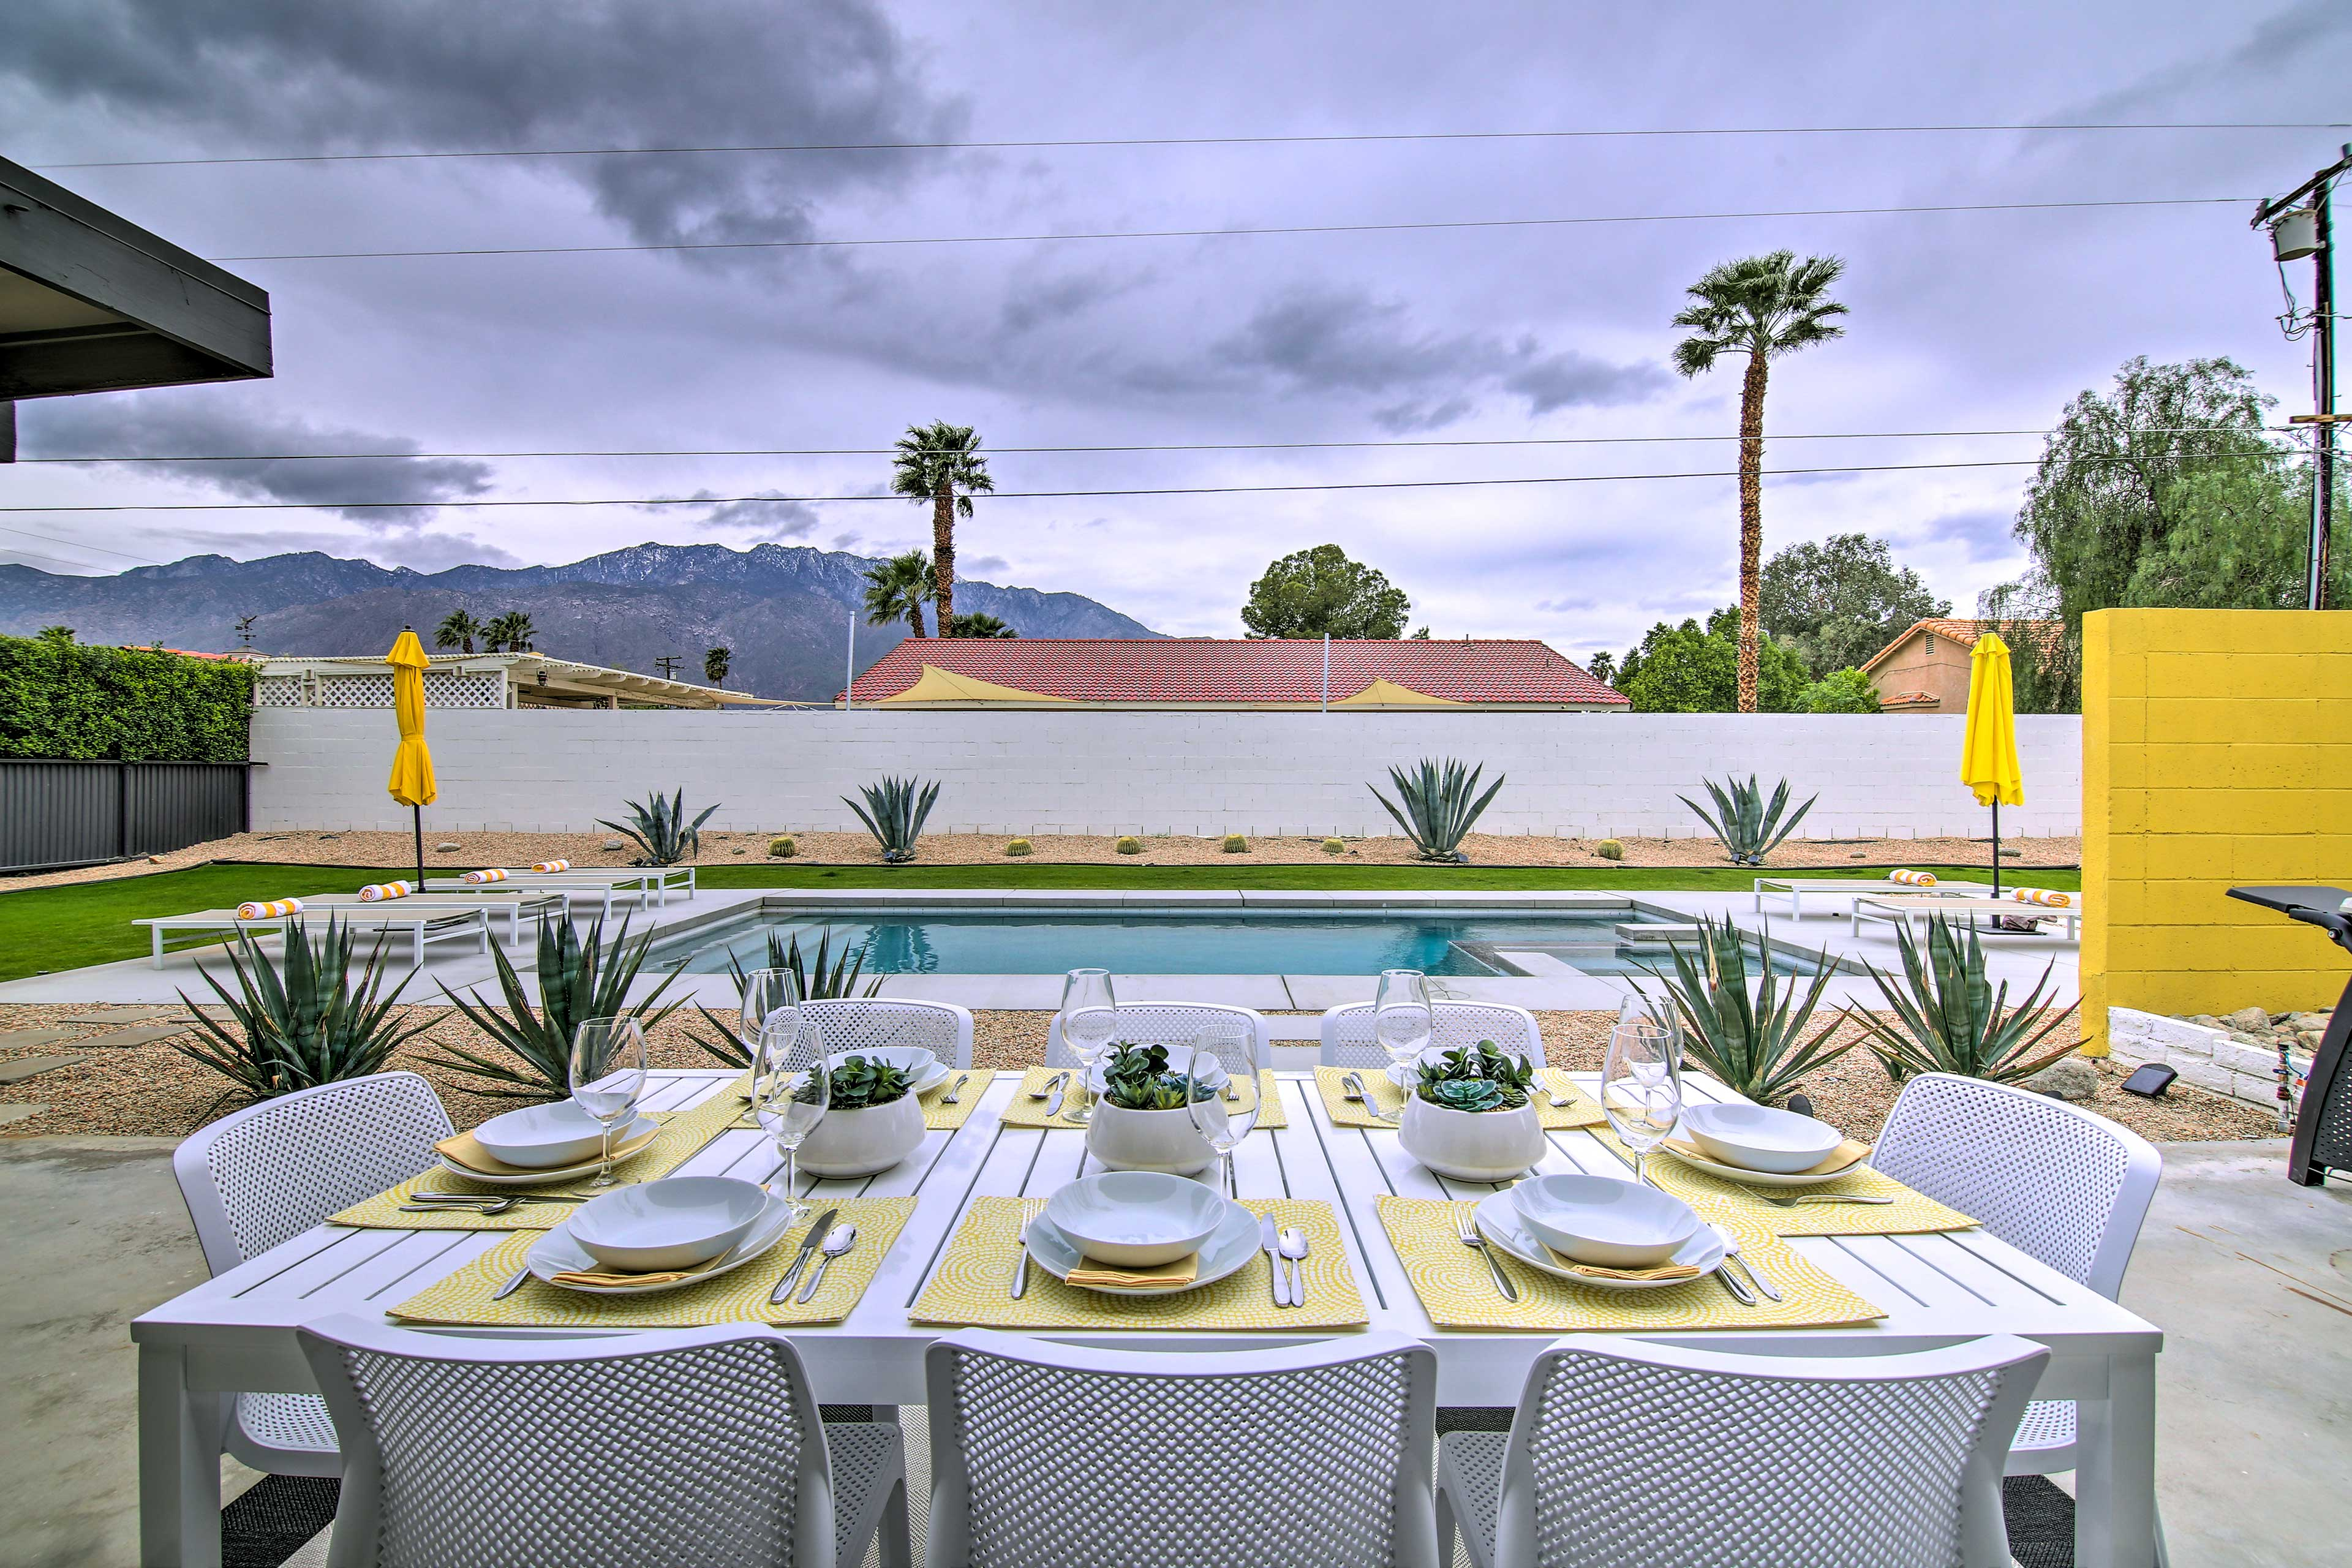 Experience Palm Springs in style at this beautiful vacation rental home.